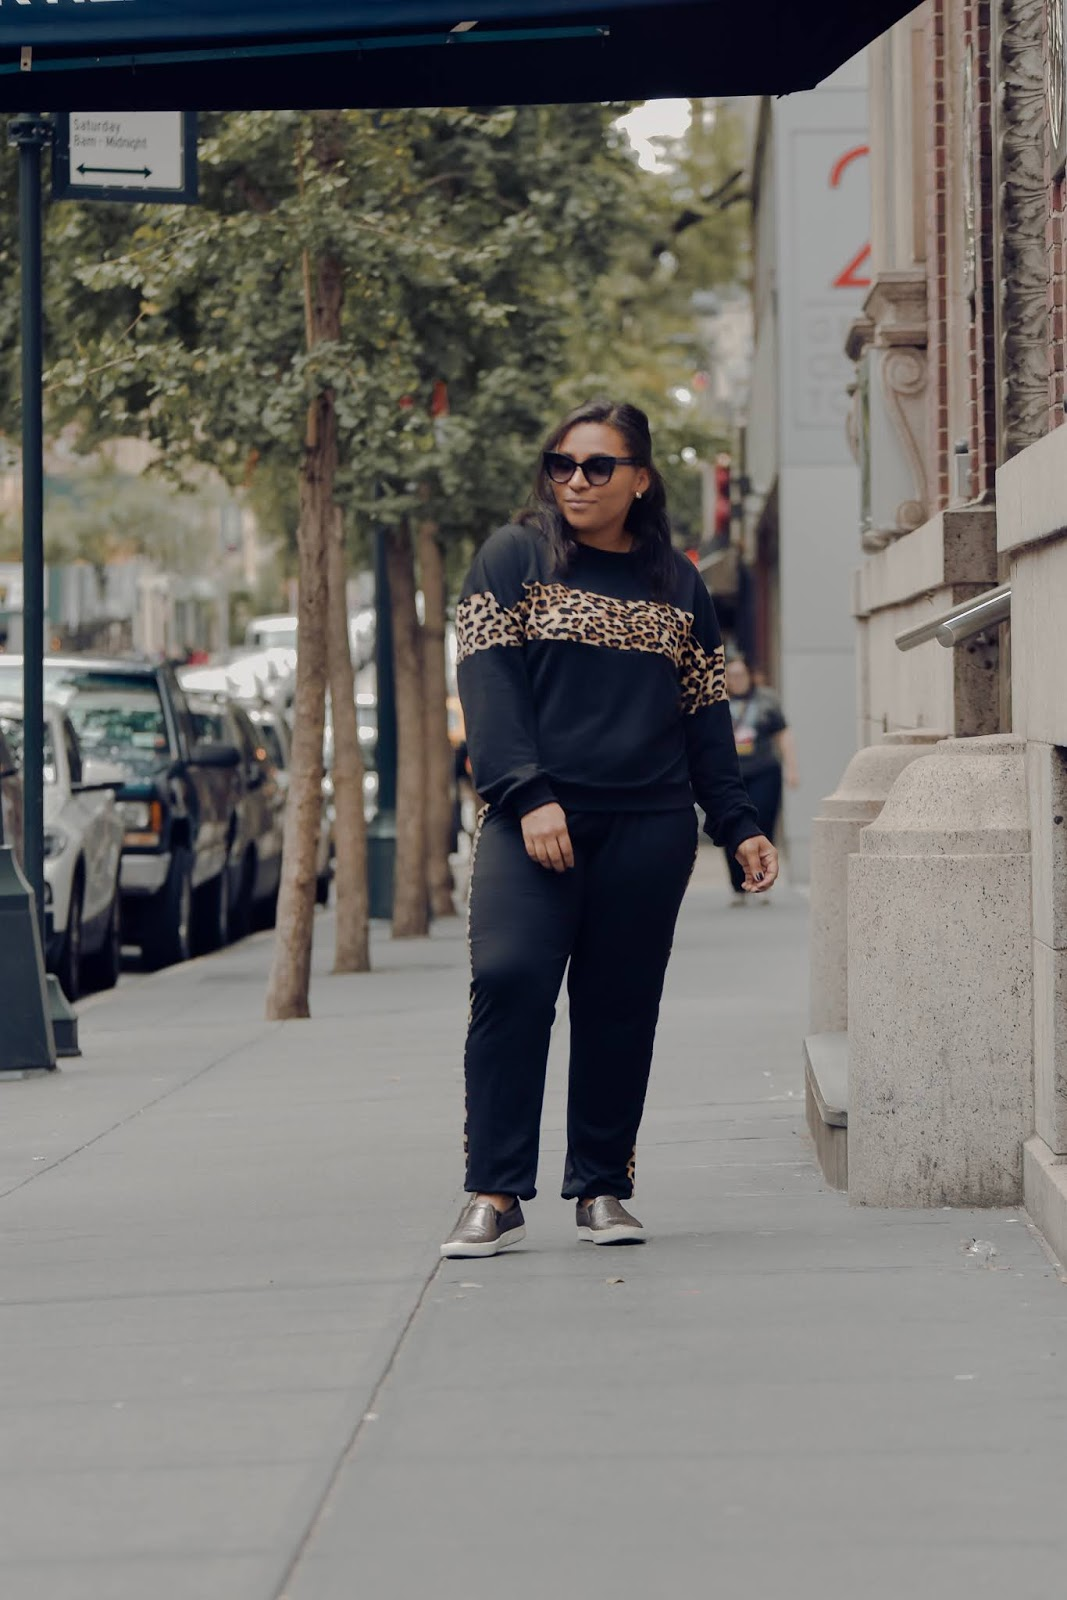 shein clothing reviews, chic sweat suits, leopard print, easy mom outfits